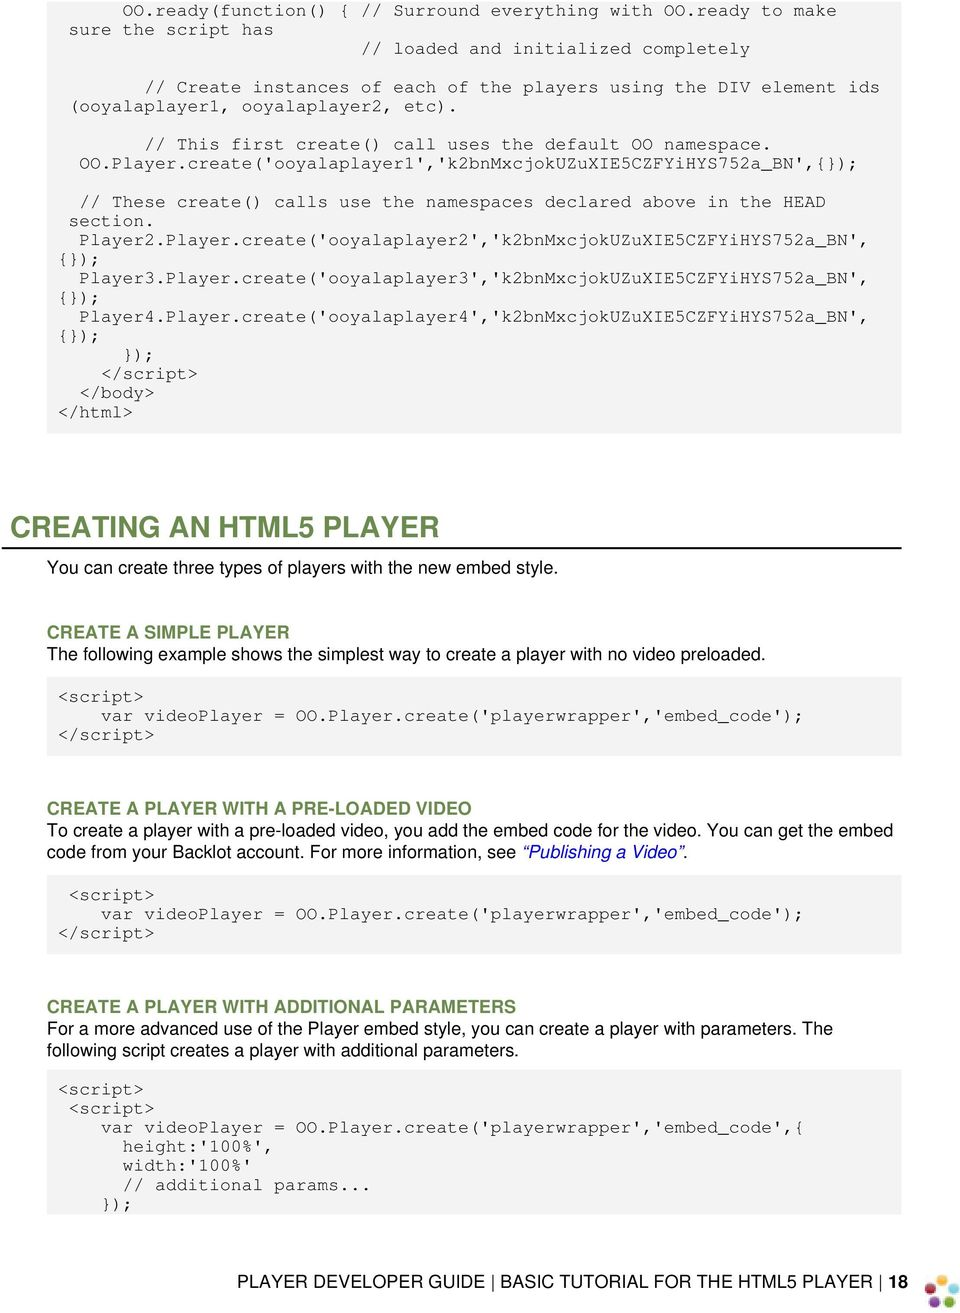 PLAYER DEVELOPER GUIDE - PDF